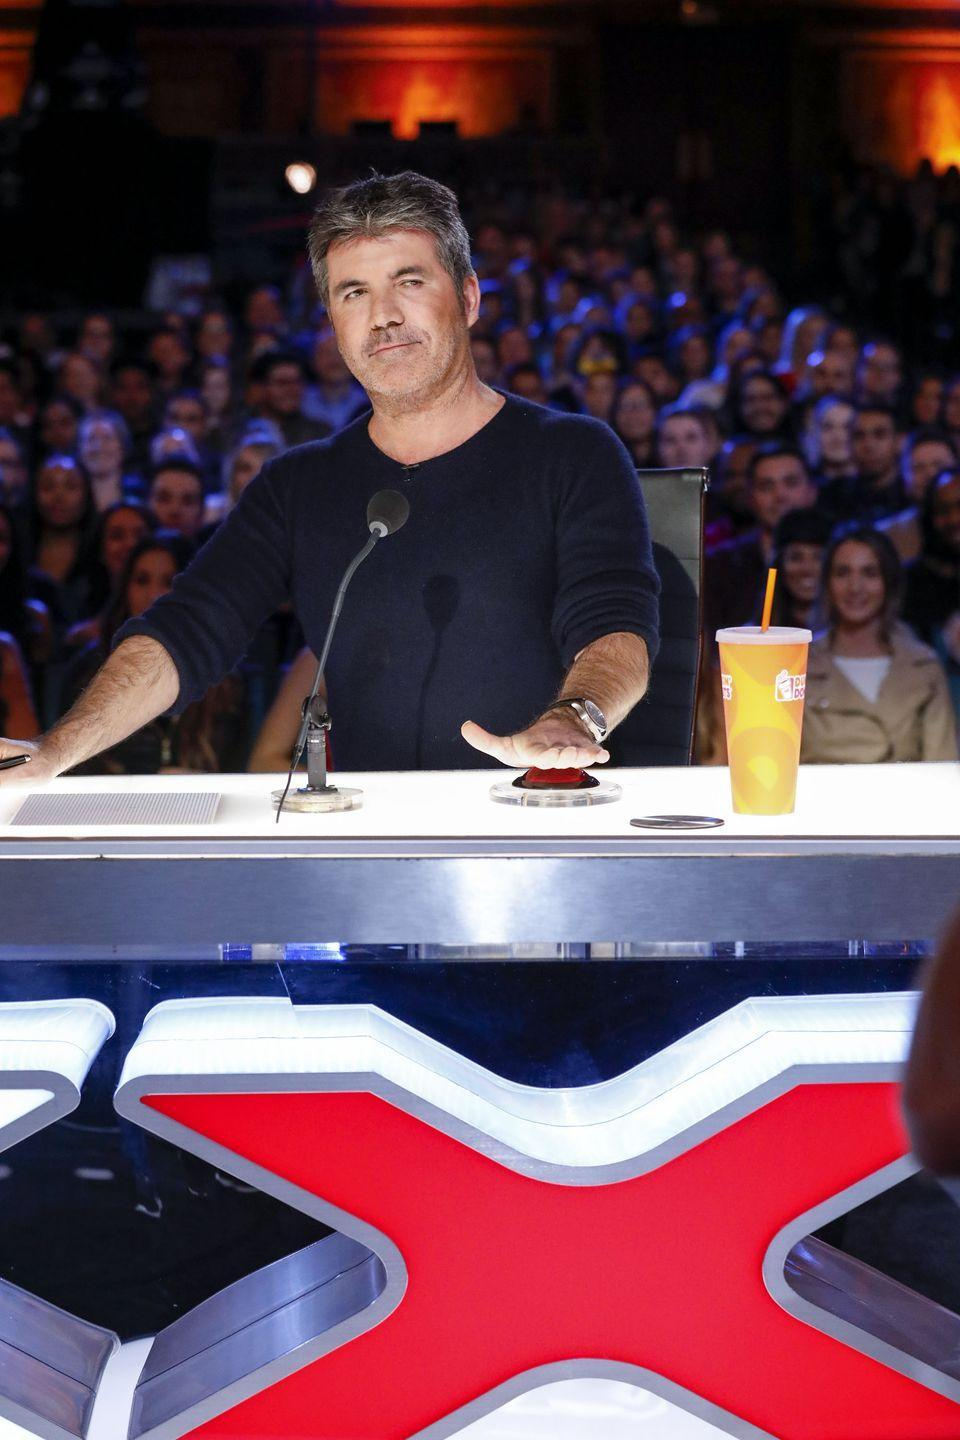 """<p>Contestants aren't allowed to counter eliminations. What is said on the show goes and production has the final say, as their decisions are <a href=""""https://www.scribd.com/document/134719192/AGT-Contract"""" rel=""""nofollow noopener"""" target=""""_blank"""" data-ylk=""""slk:protected by the signed contracts"""" class=""""link rapid-noclick-resp"""">protected by the signed contracts</a>. </p>"""